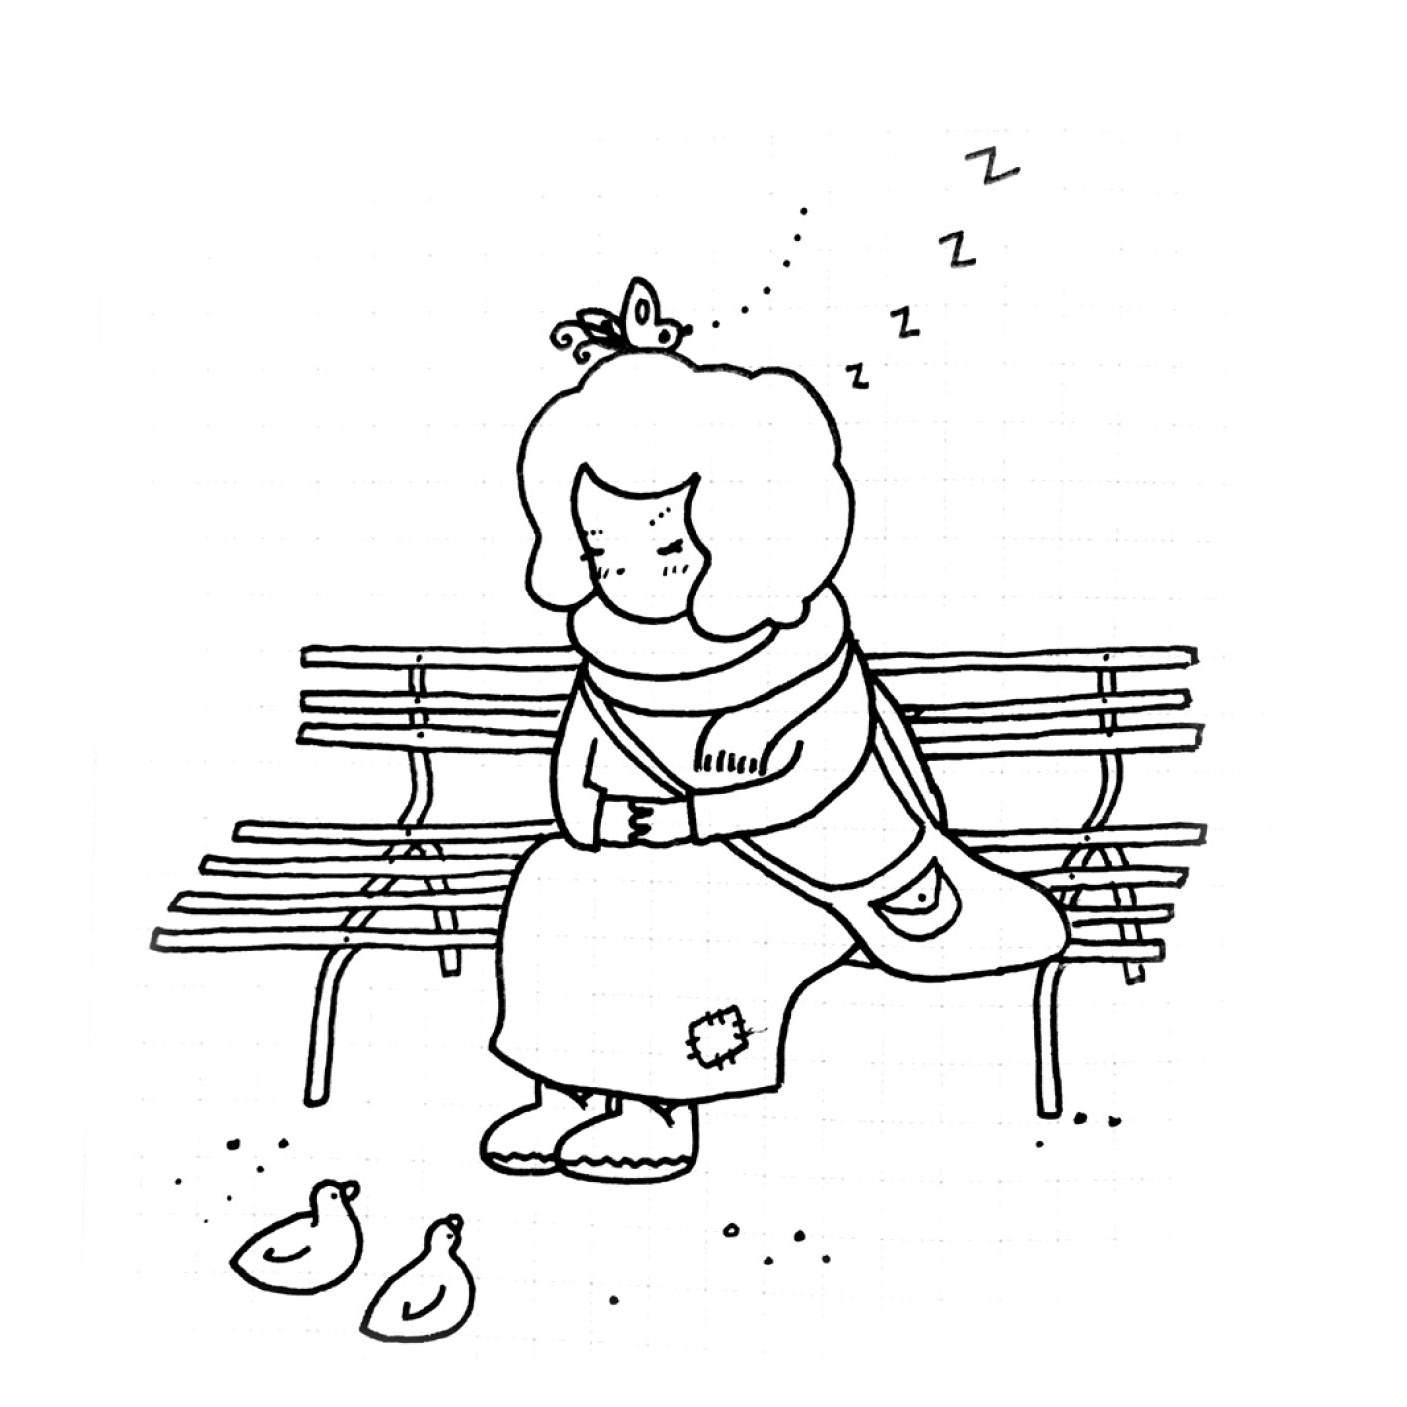 Falling asleep on park benches